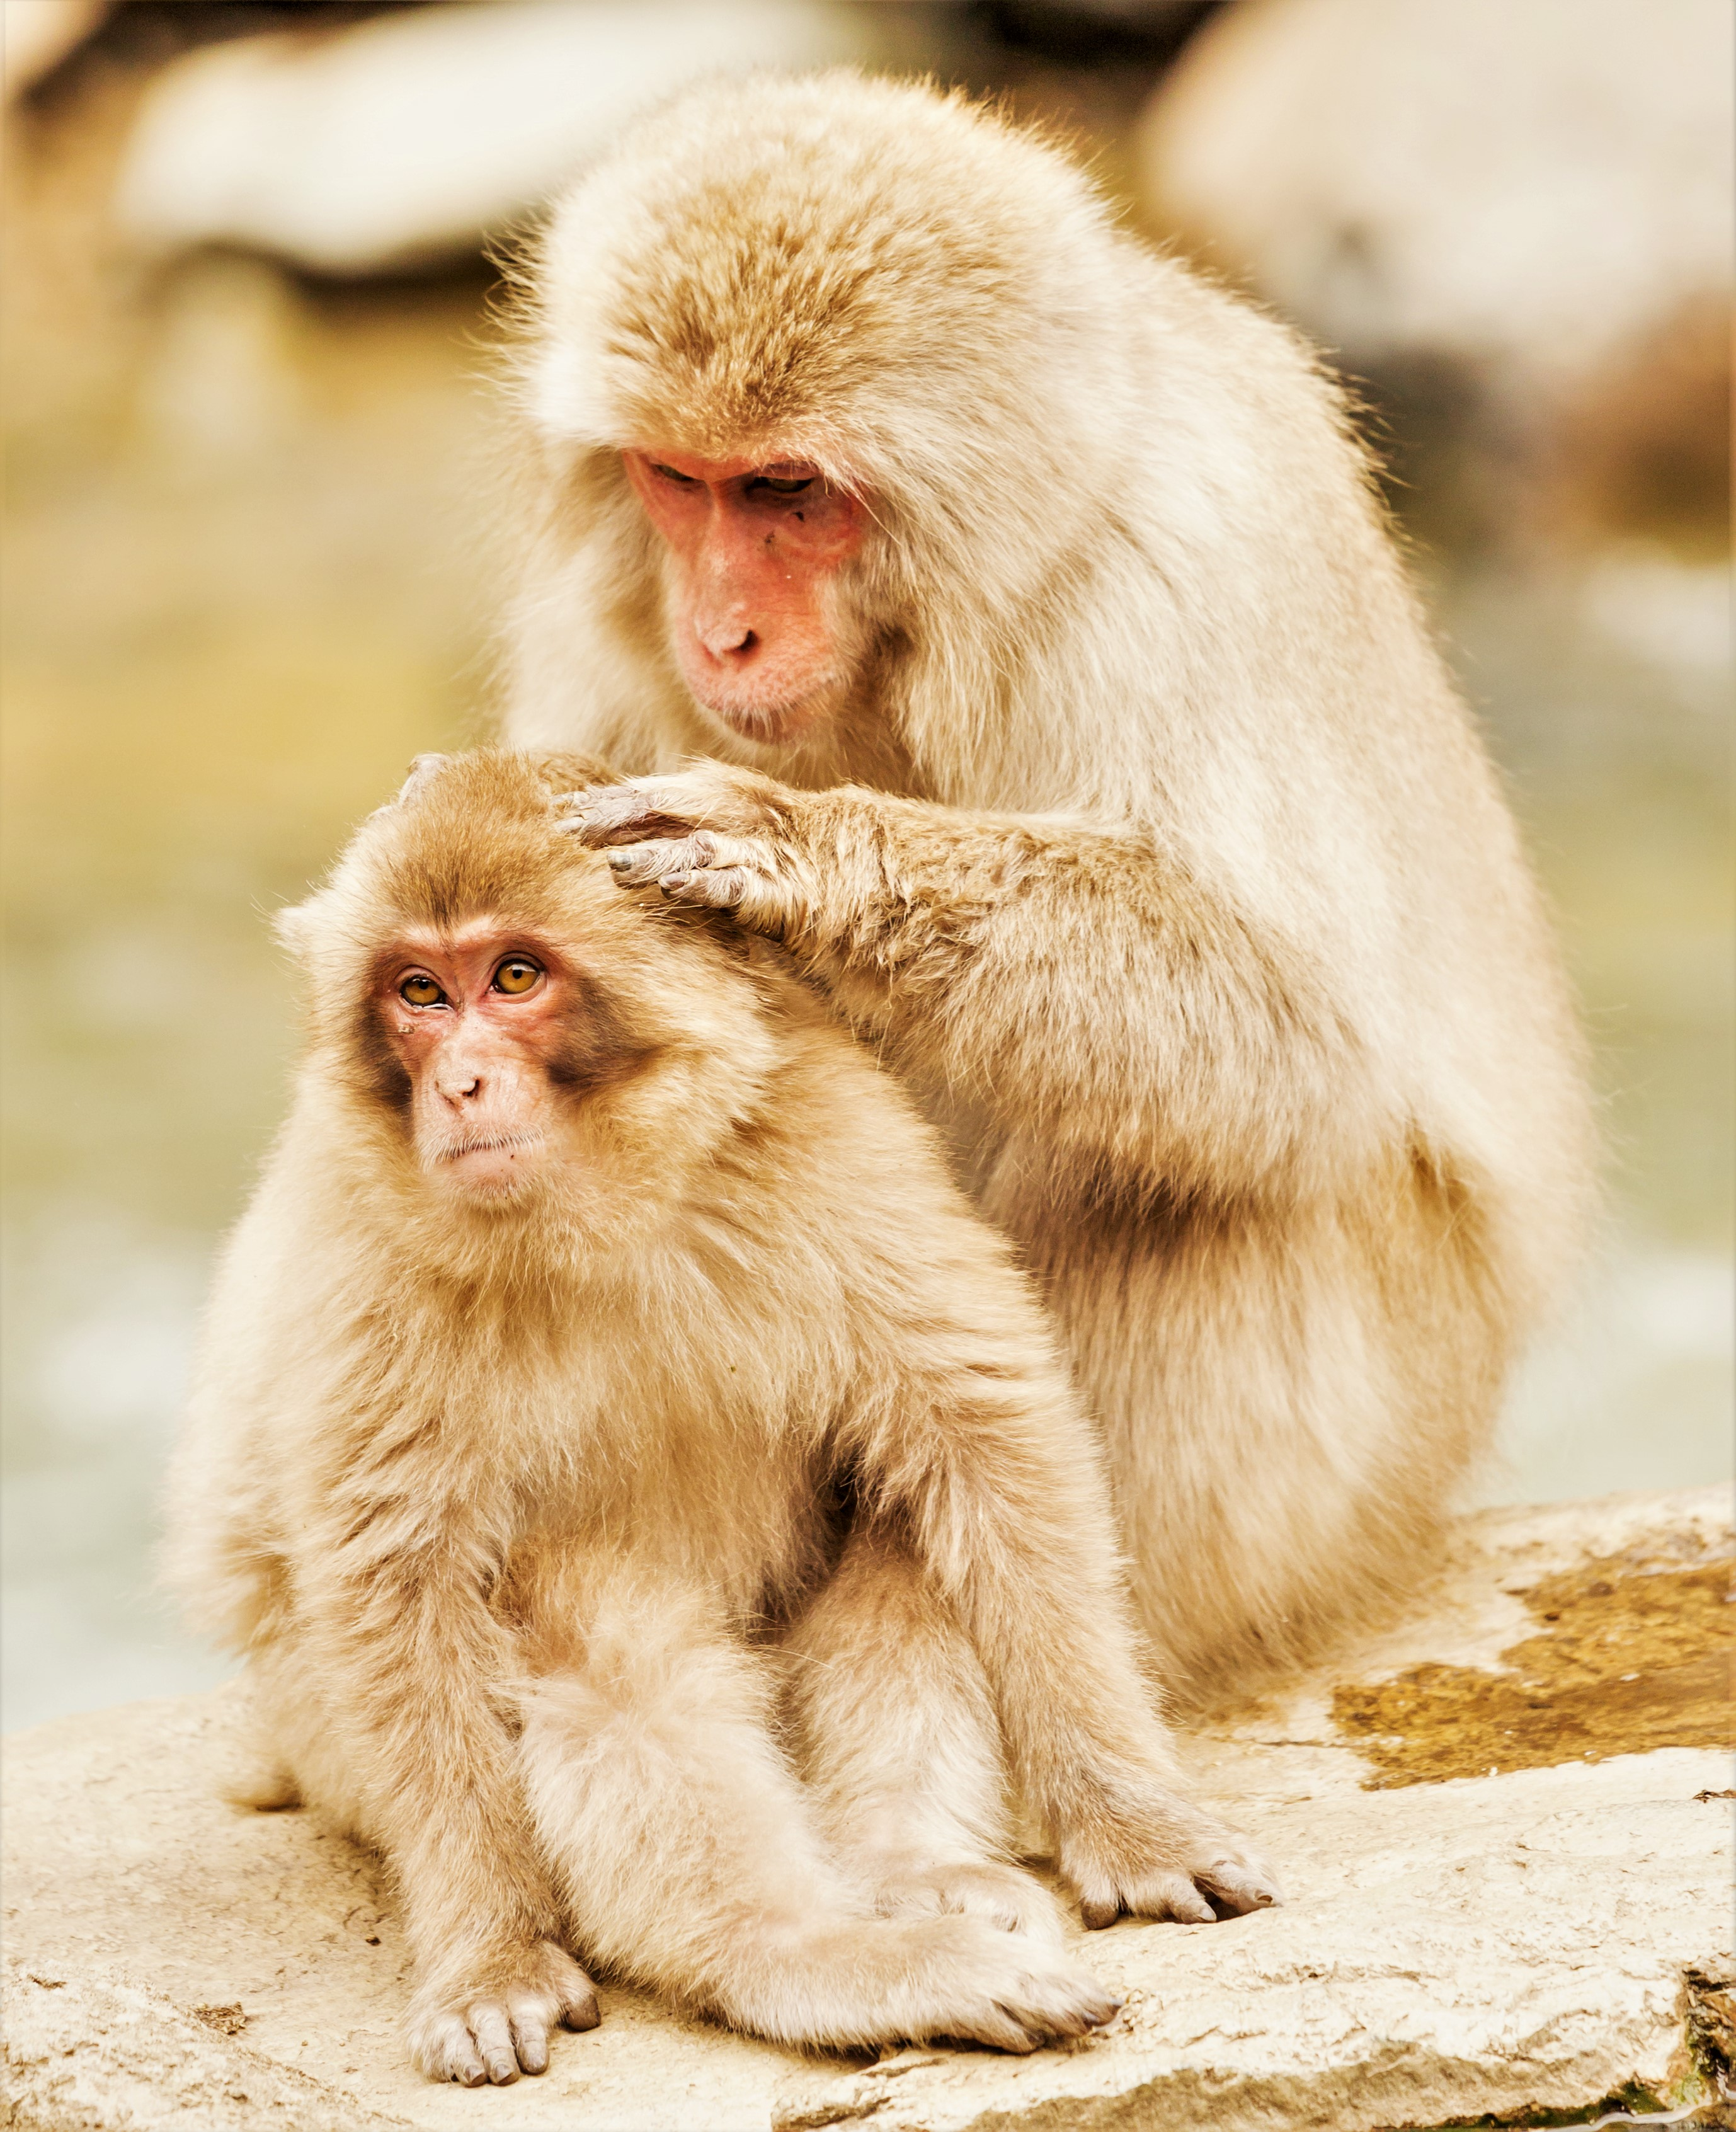 https://upload.wikimedia.org/wikipedia/commons/a/aa/Japanese_Snow_Monkey_%28Macaque%29_Mother_Grooms_Her_Young.jpg